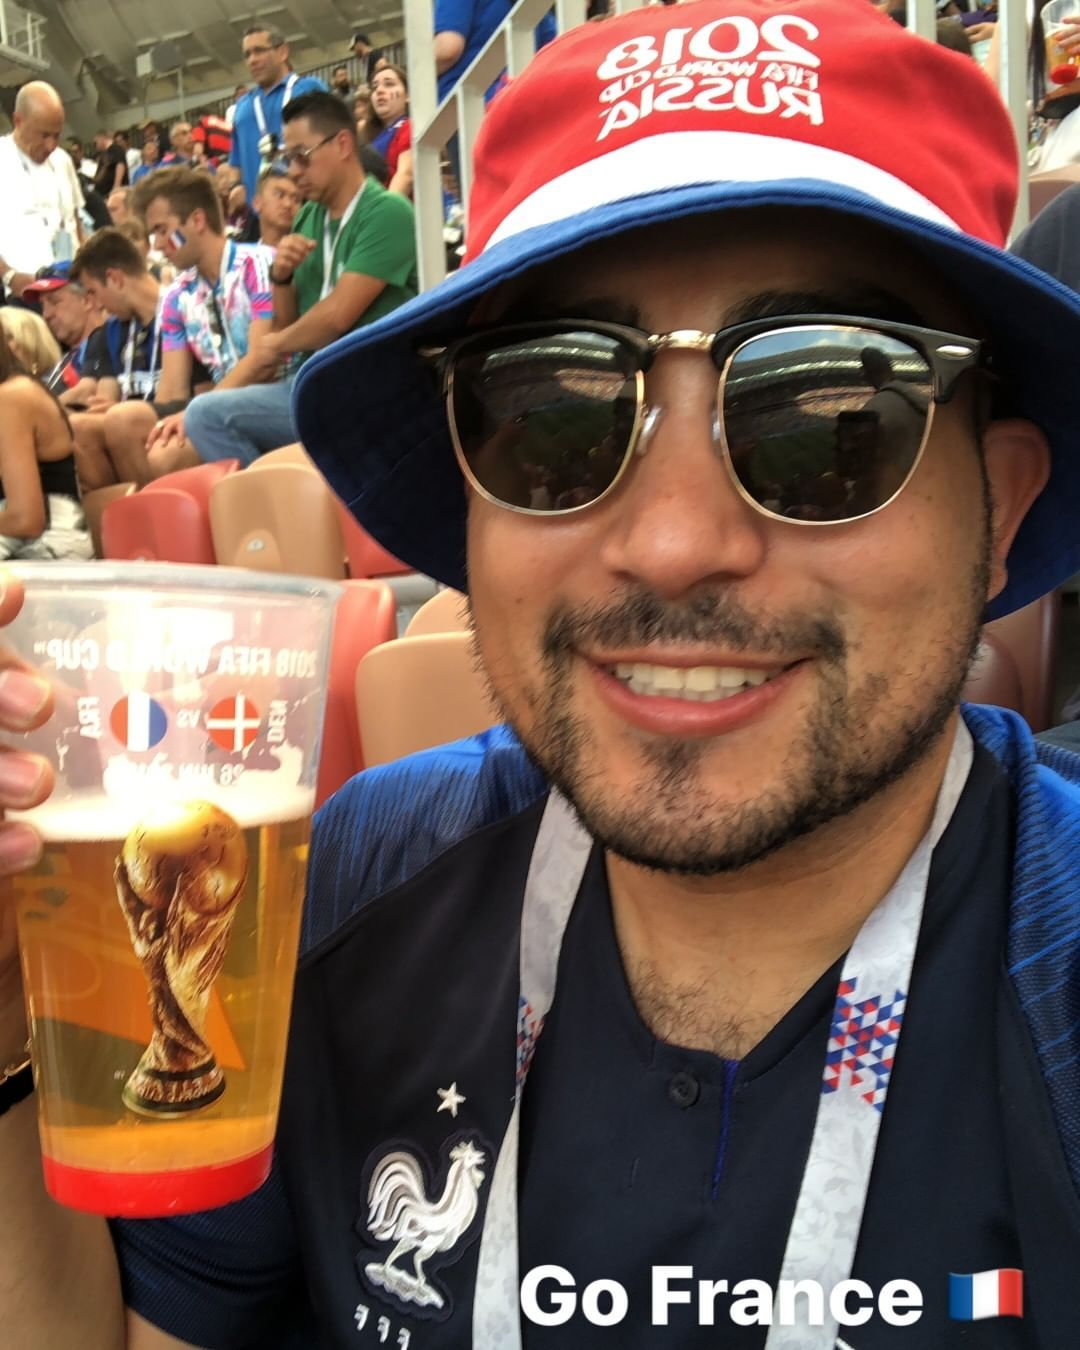 Cheezin for Sheezin! Denmark vs France...not sure if it was the beer putting a smile on my face or the game but i do love me some soccer :)